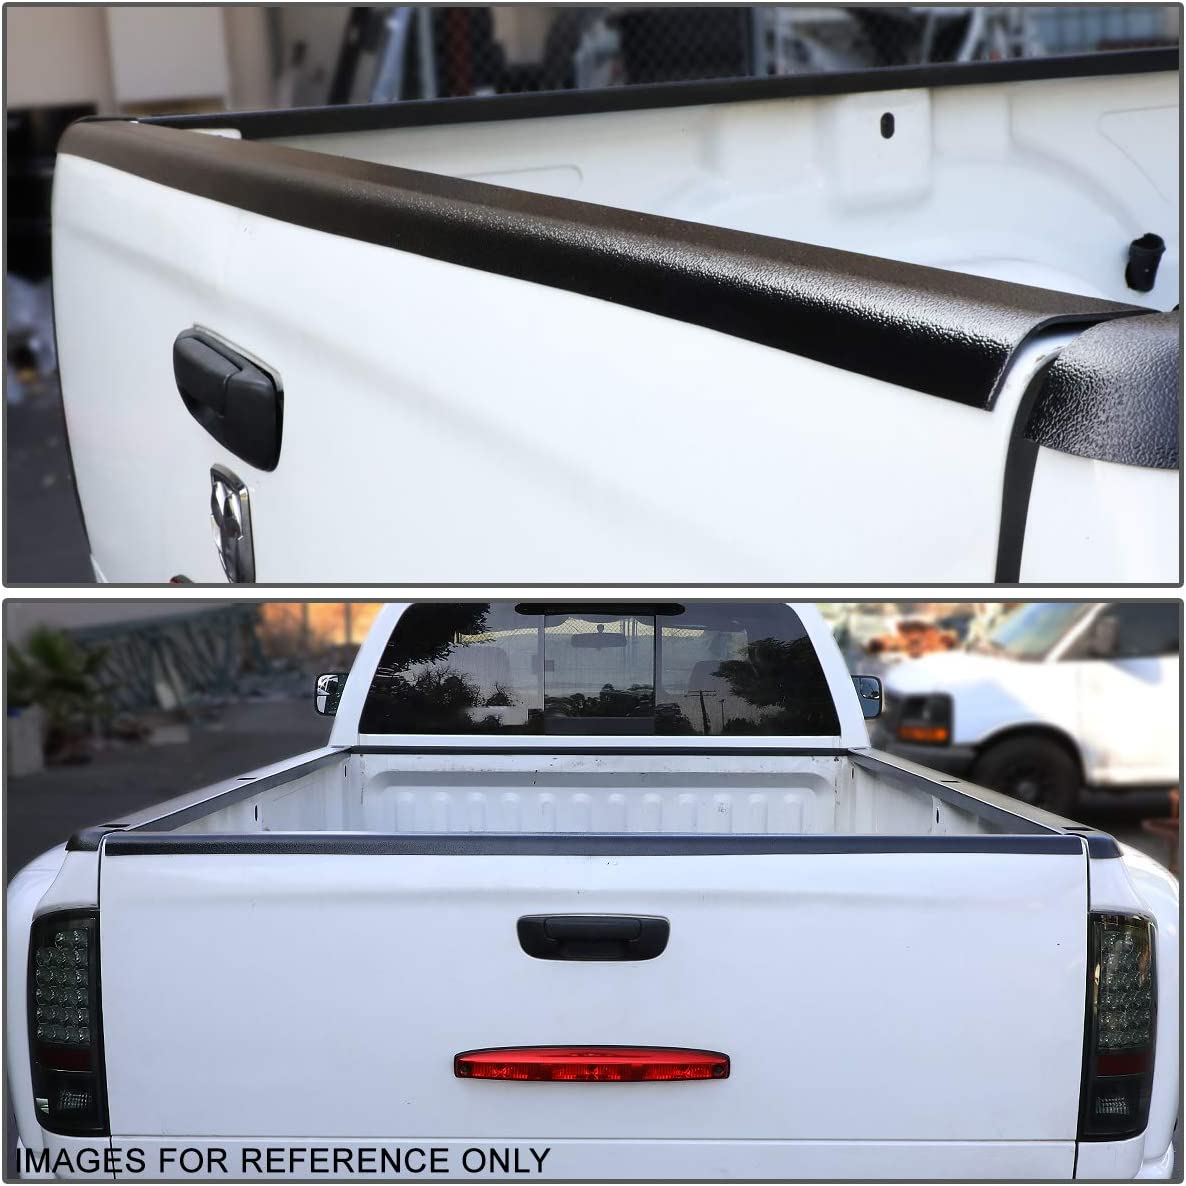 Wade 72-01177 Truck Bed Tailgate Cap Black Smooth Finish for 2004-2012 Chevrolet Colorado /& GMC Canyon replaces factory tailgate cap